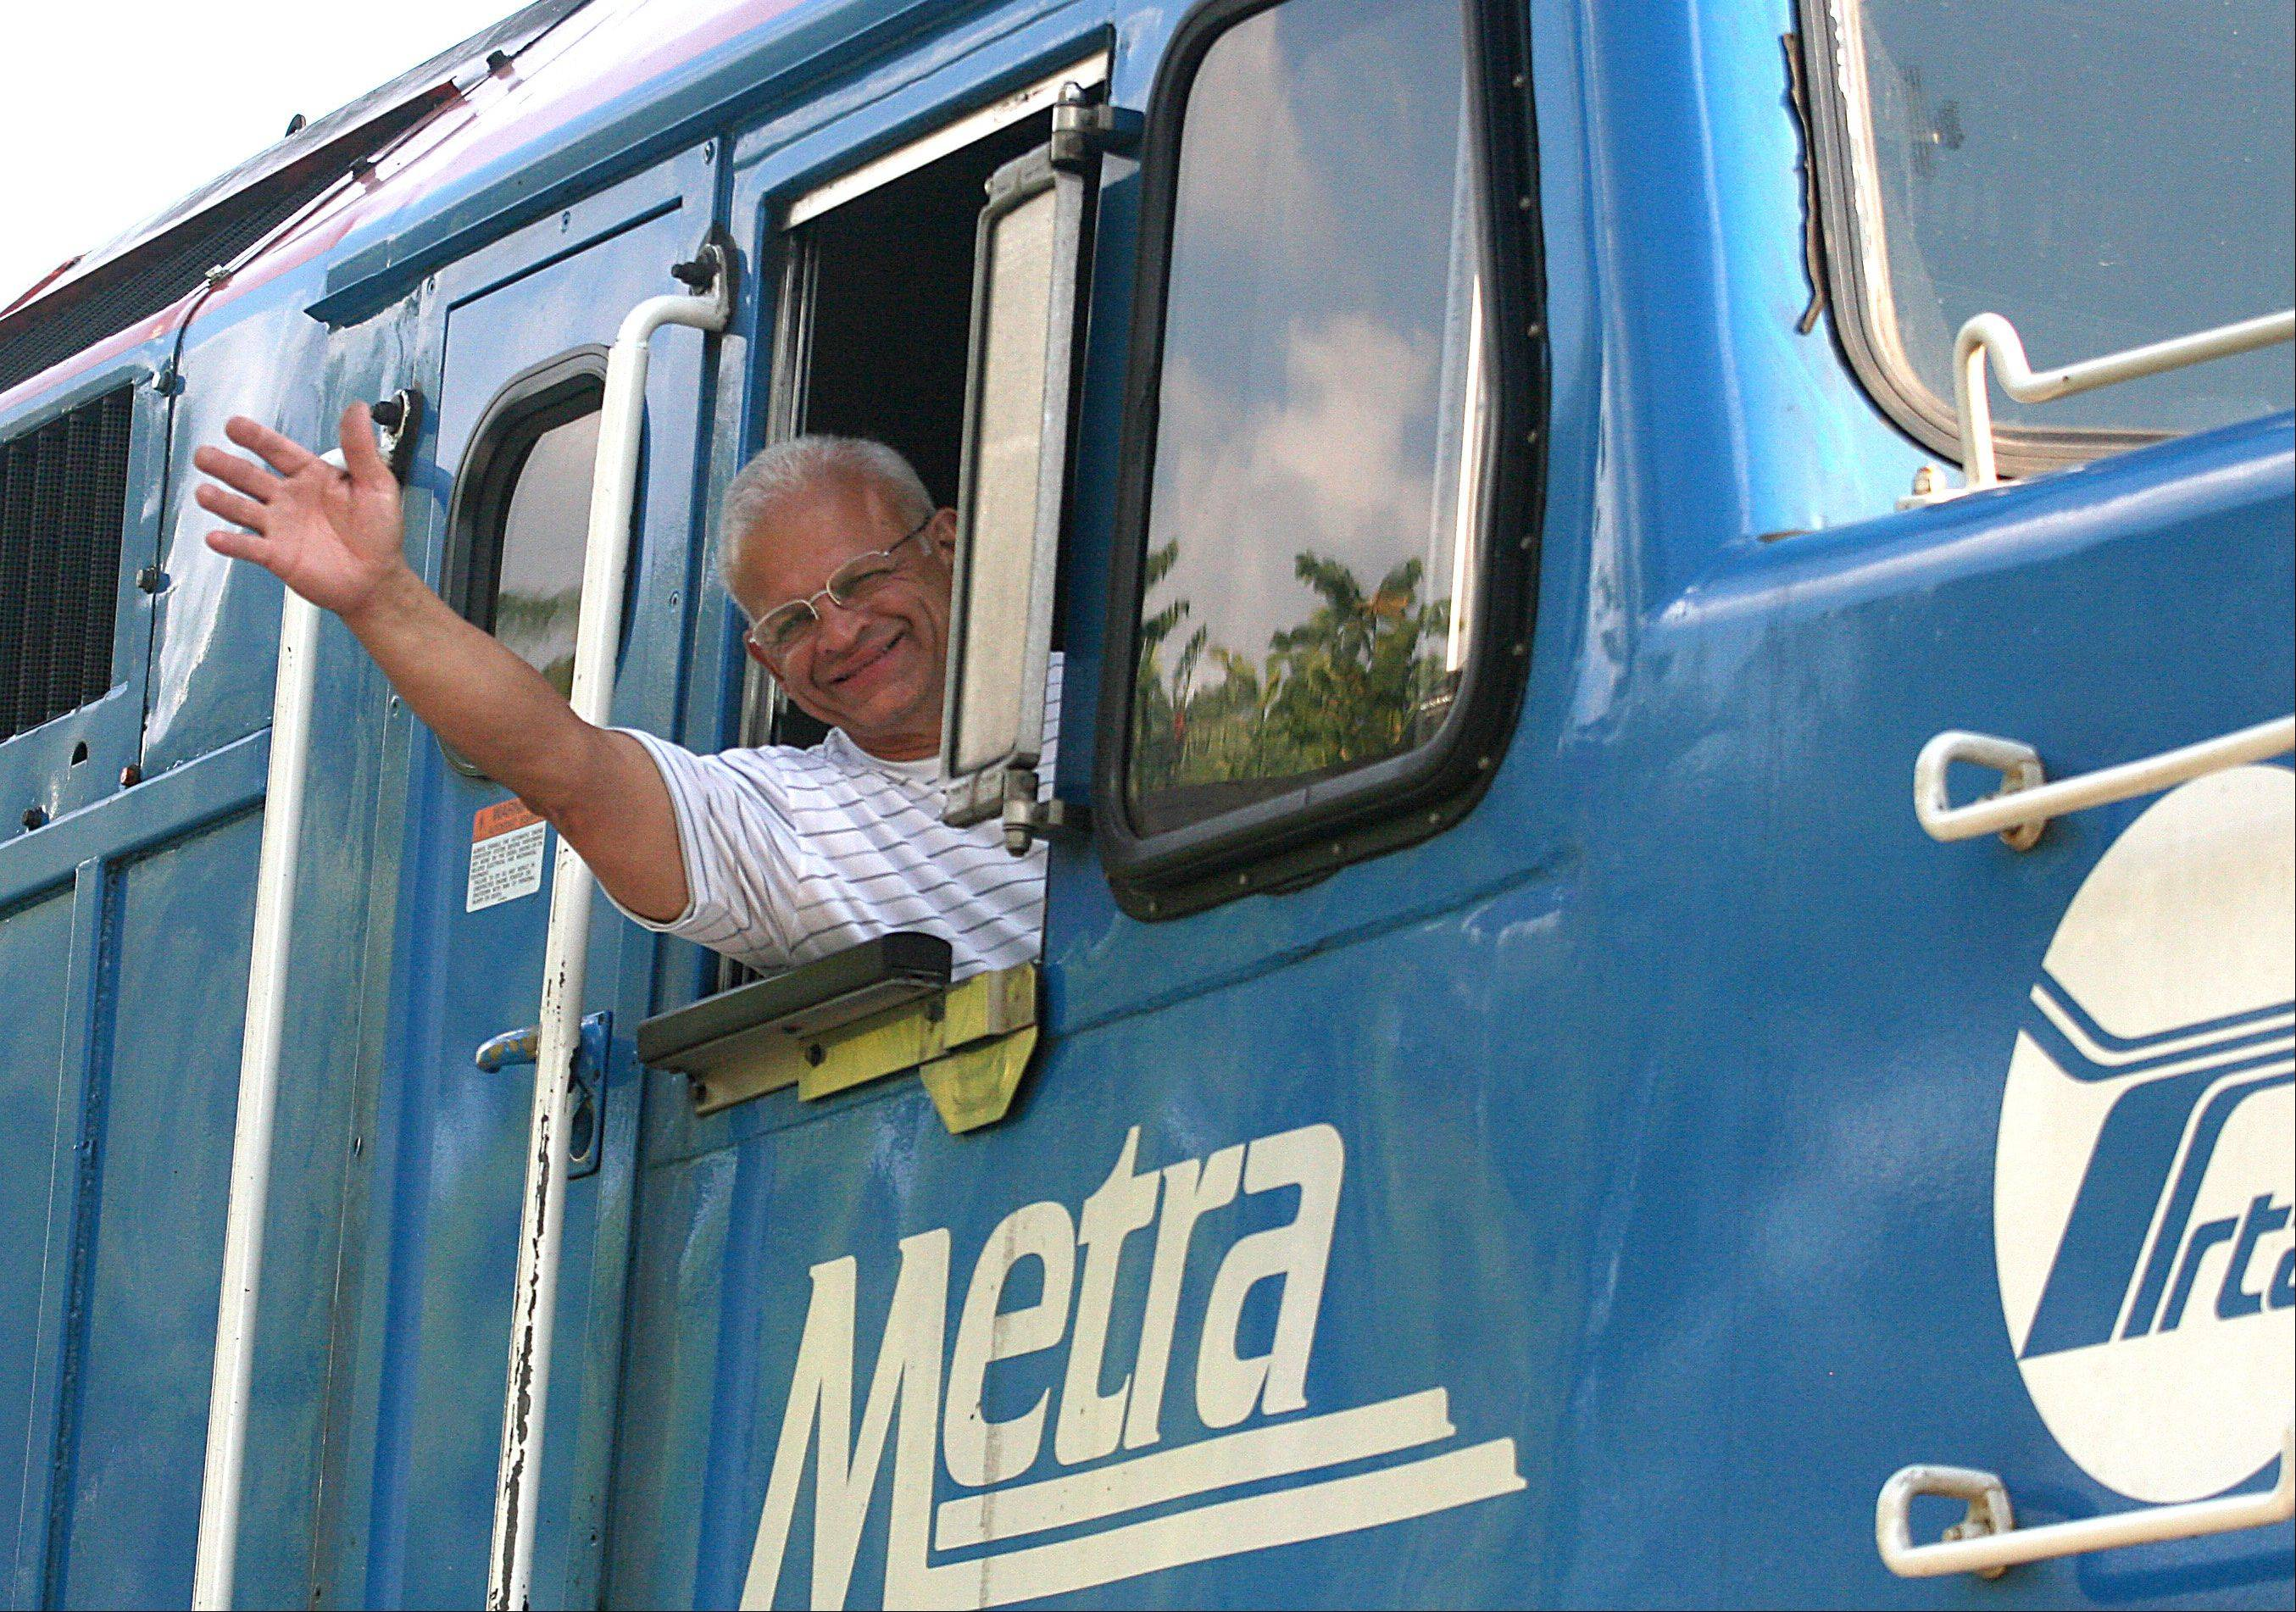 Metra engineer Hector Feliciano smiles after piloting a train for the final time upon arrival at the Chicago Street Station in Elgin on Tuesday. Feliciano retired after 42 years of service.